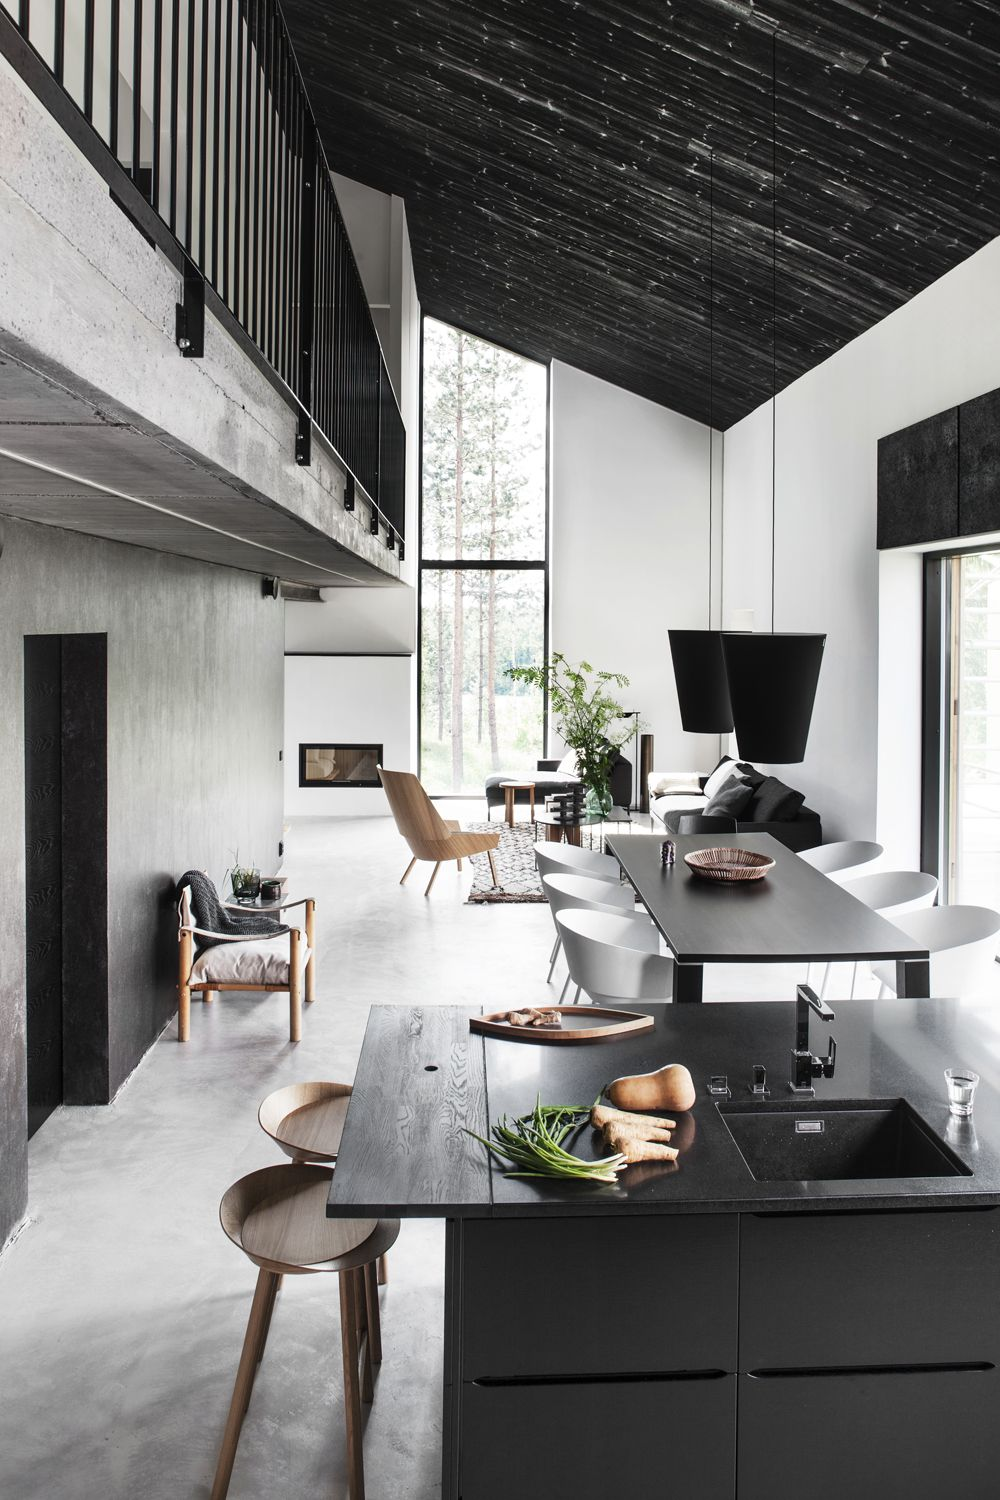 35 cuisines design à voir absolument | finland, interiors and house